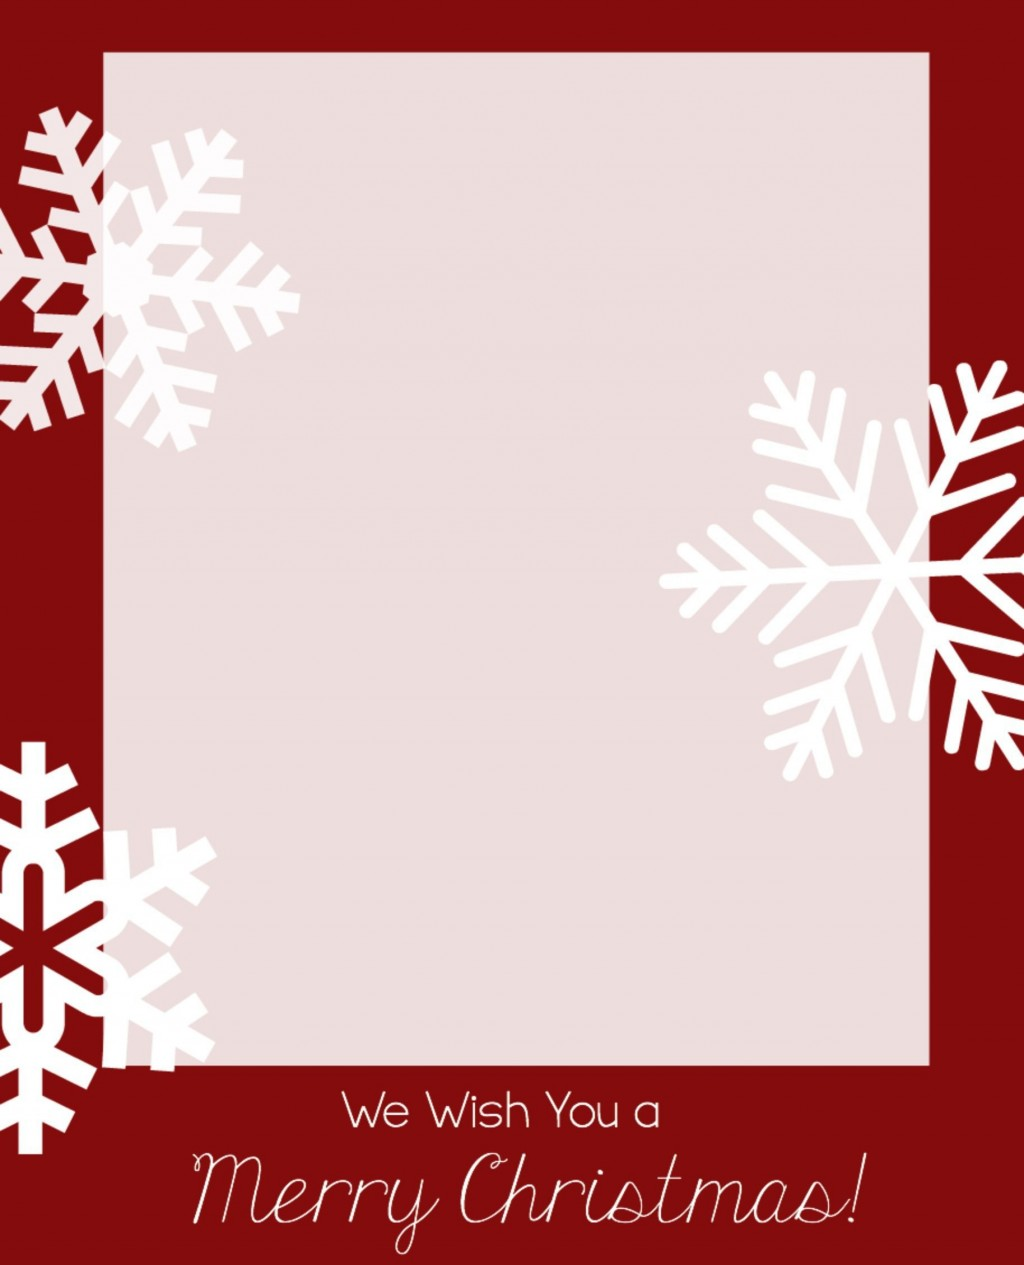 005 Simple Christma Card Template Free Download Photo  Downloads Photoshop EditableLarge